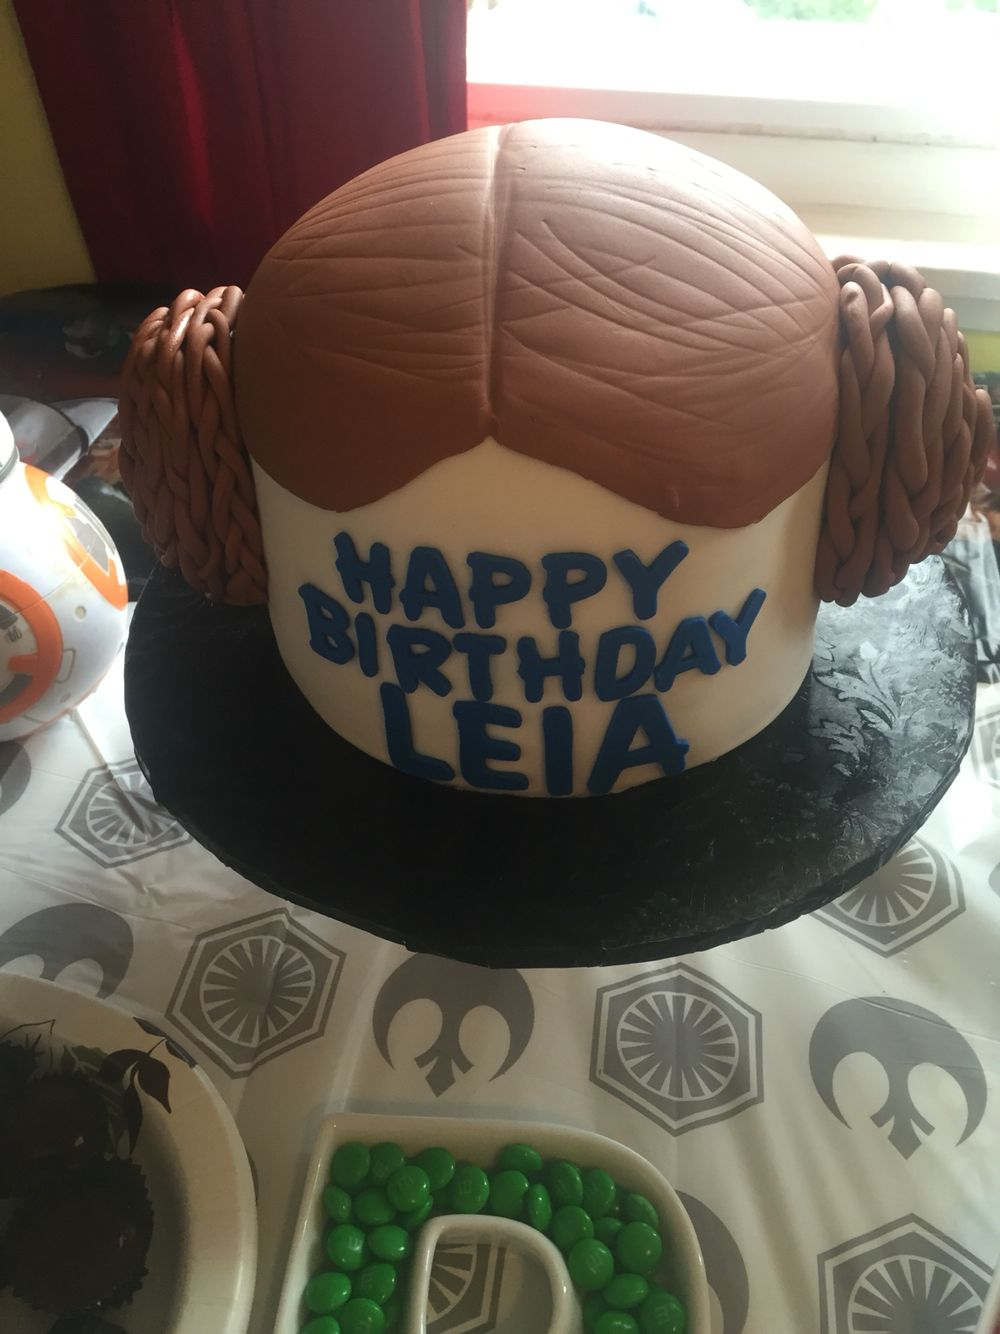 Princess Leia Star Wars cake